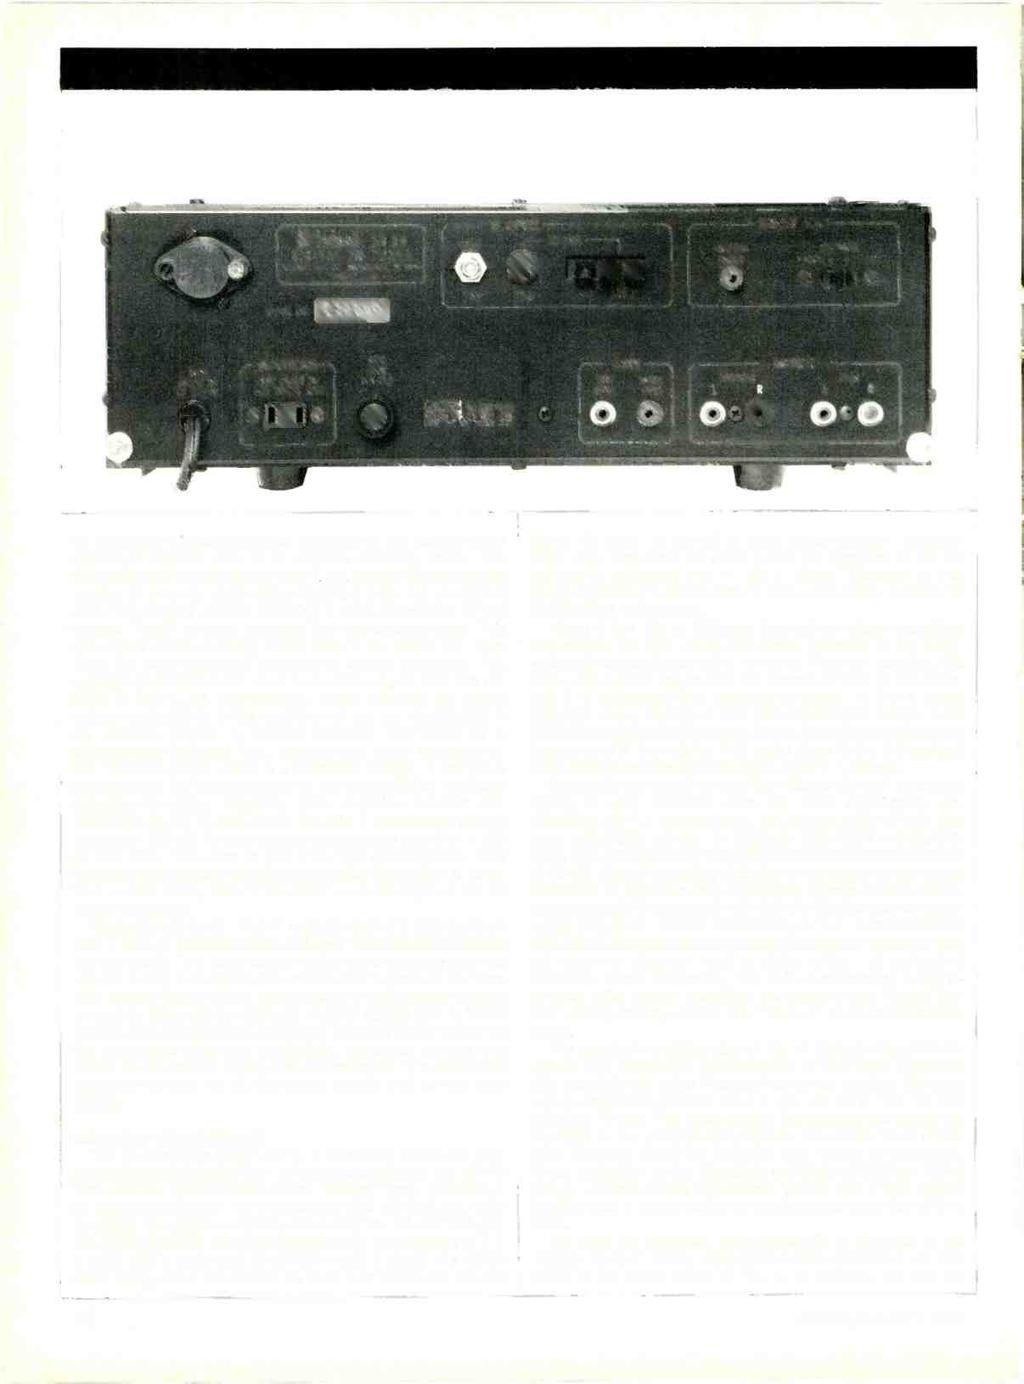 Ultinlosh MR 80 DIGITAL FM TUNER M[INi05N tal.(nc. IINÜNAMiON. Ni 13403 SERIAL NO. MADE IN U.S A.